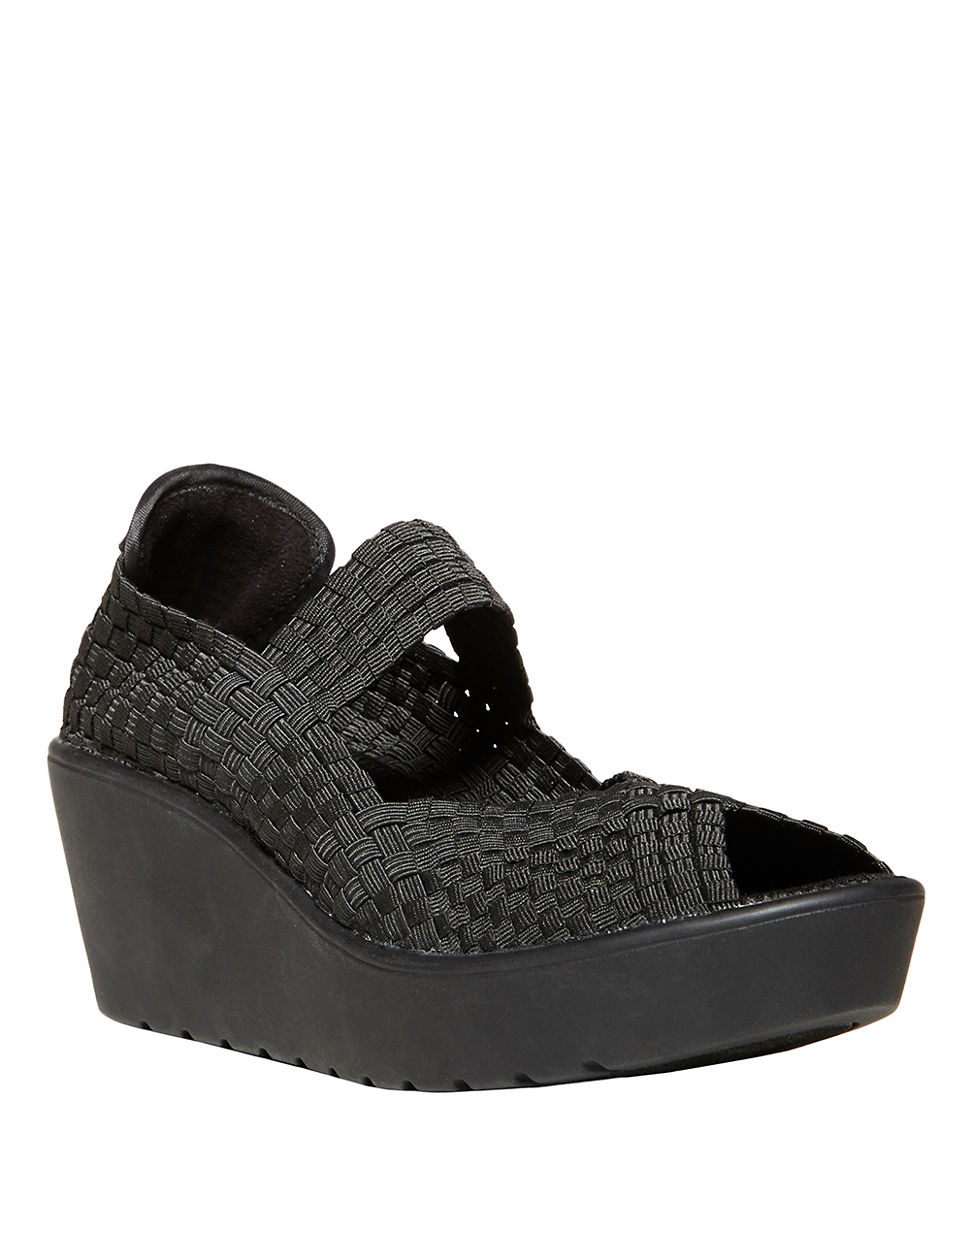 Lyst Steven By Steve Madden Brynn Woven Wedges In Black